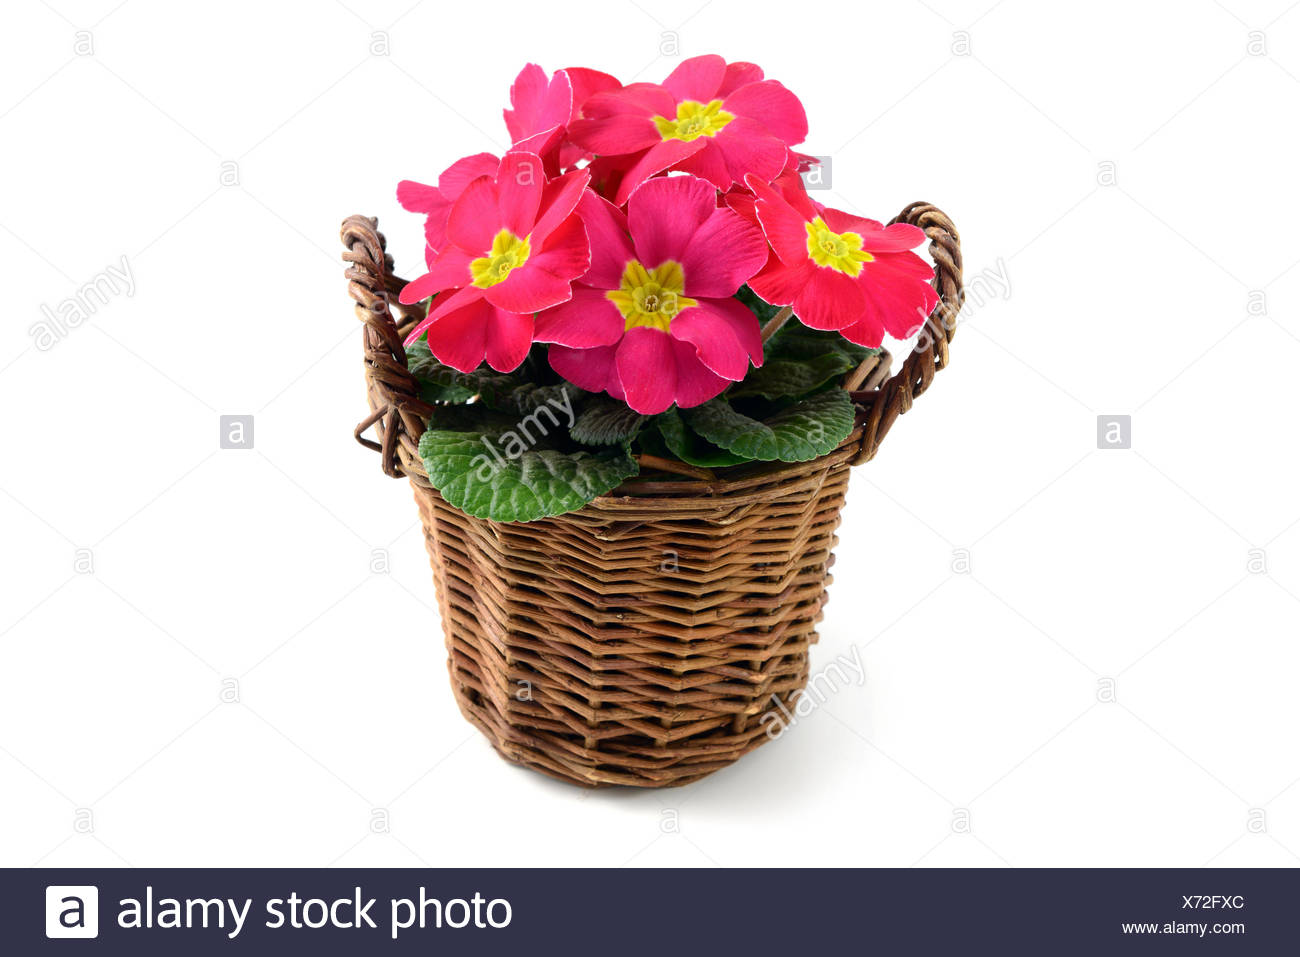 Pink Flower Pot Against White Background Stock Photo 279724884 Alamy